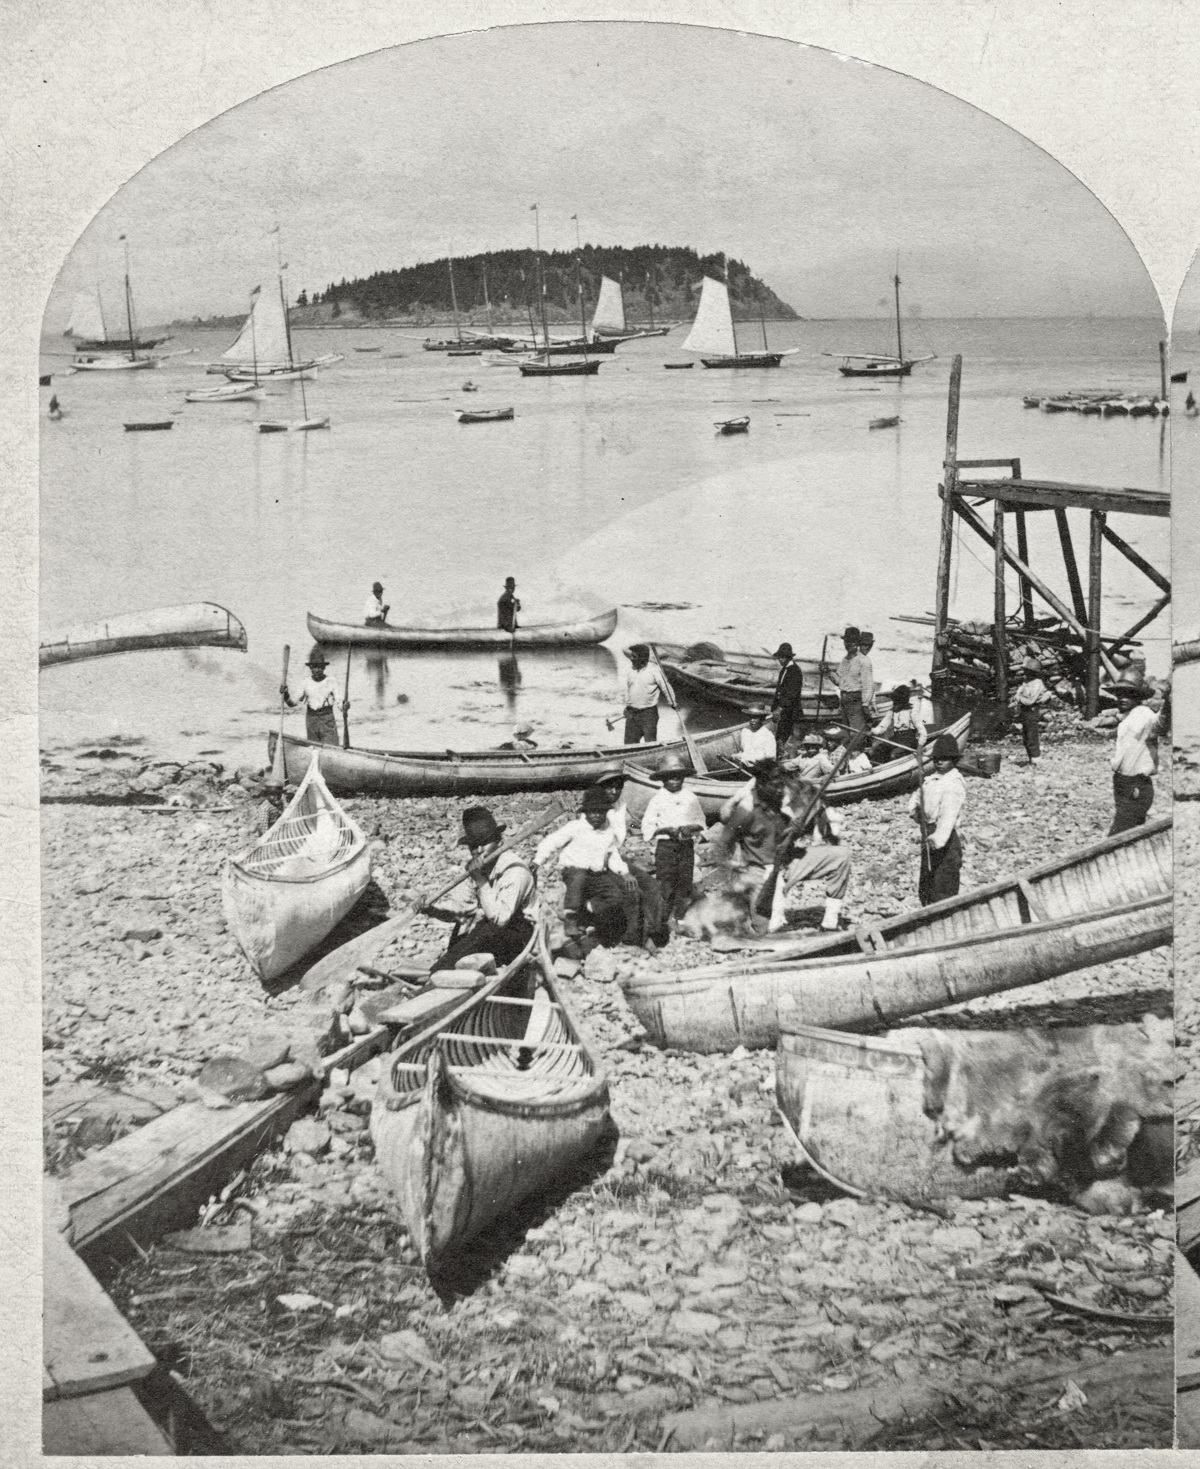 Indians and Canoes on the Shore at Bar Harbor